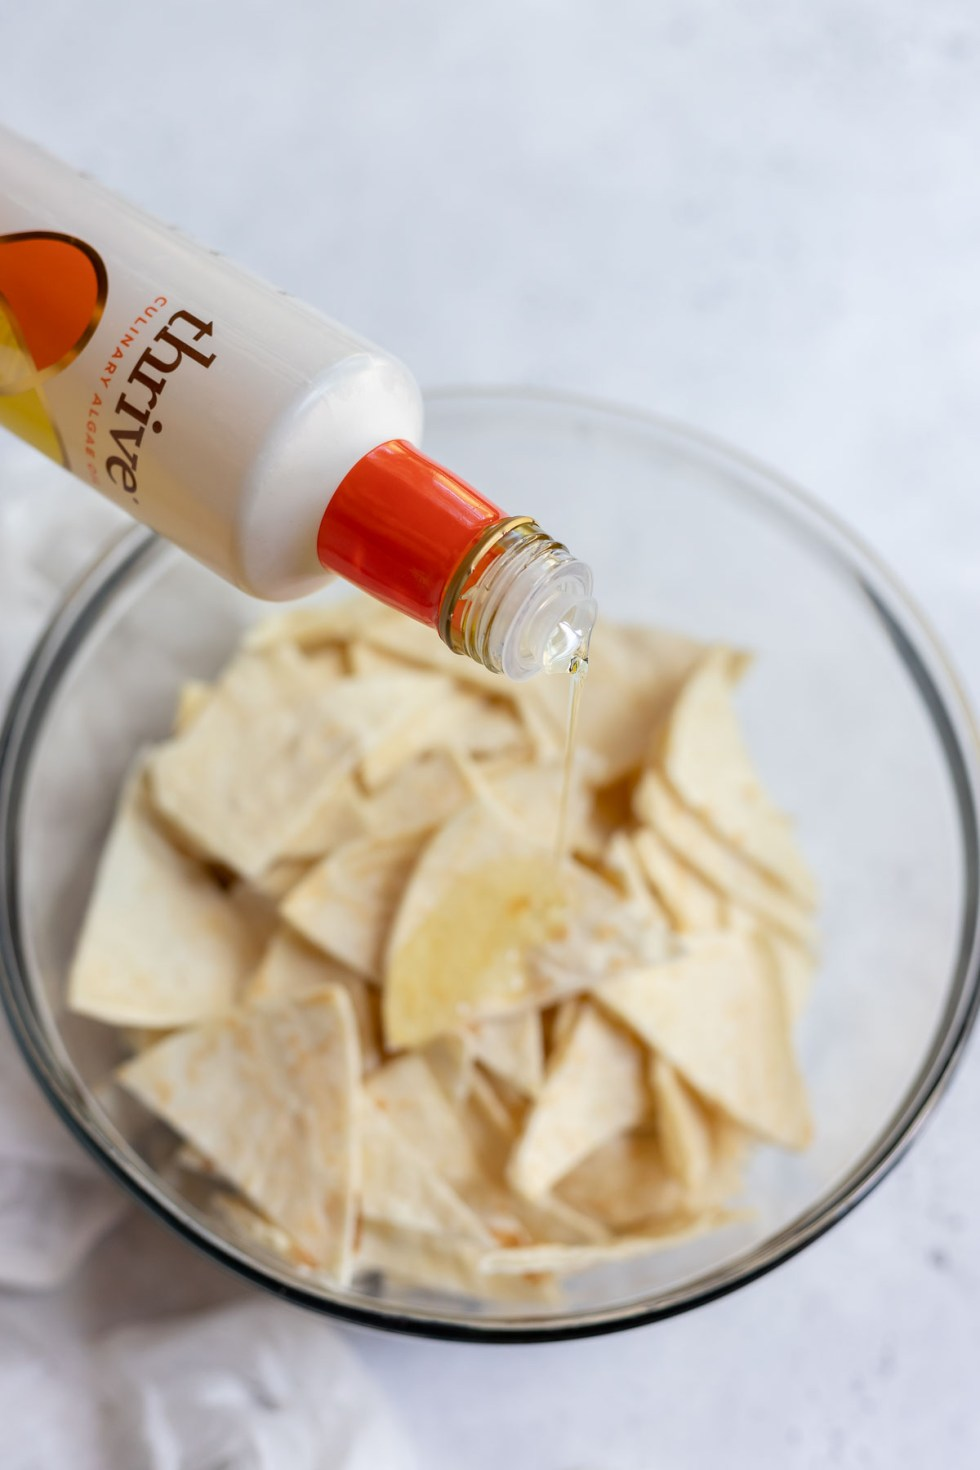 tortilla triangles being drizzled with oil